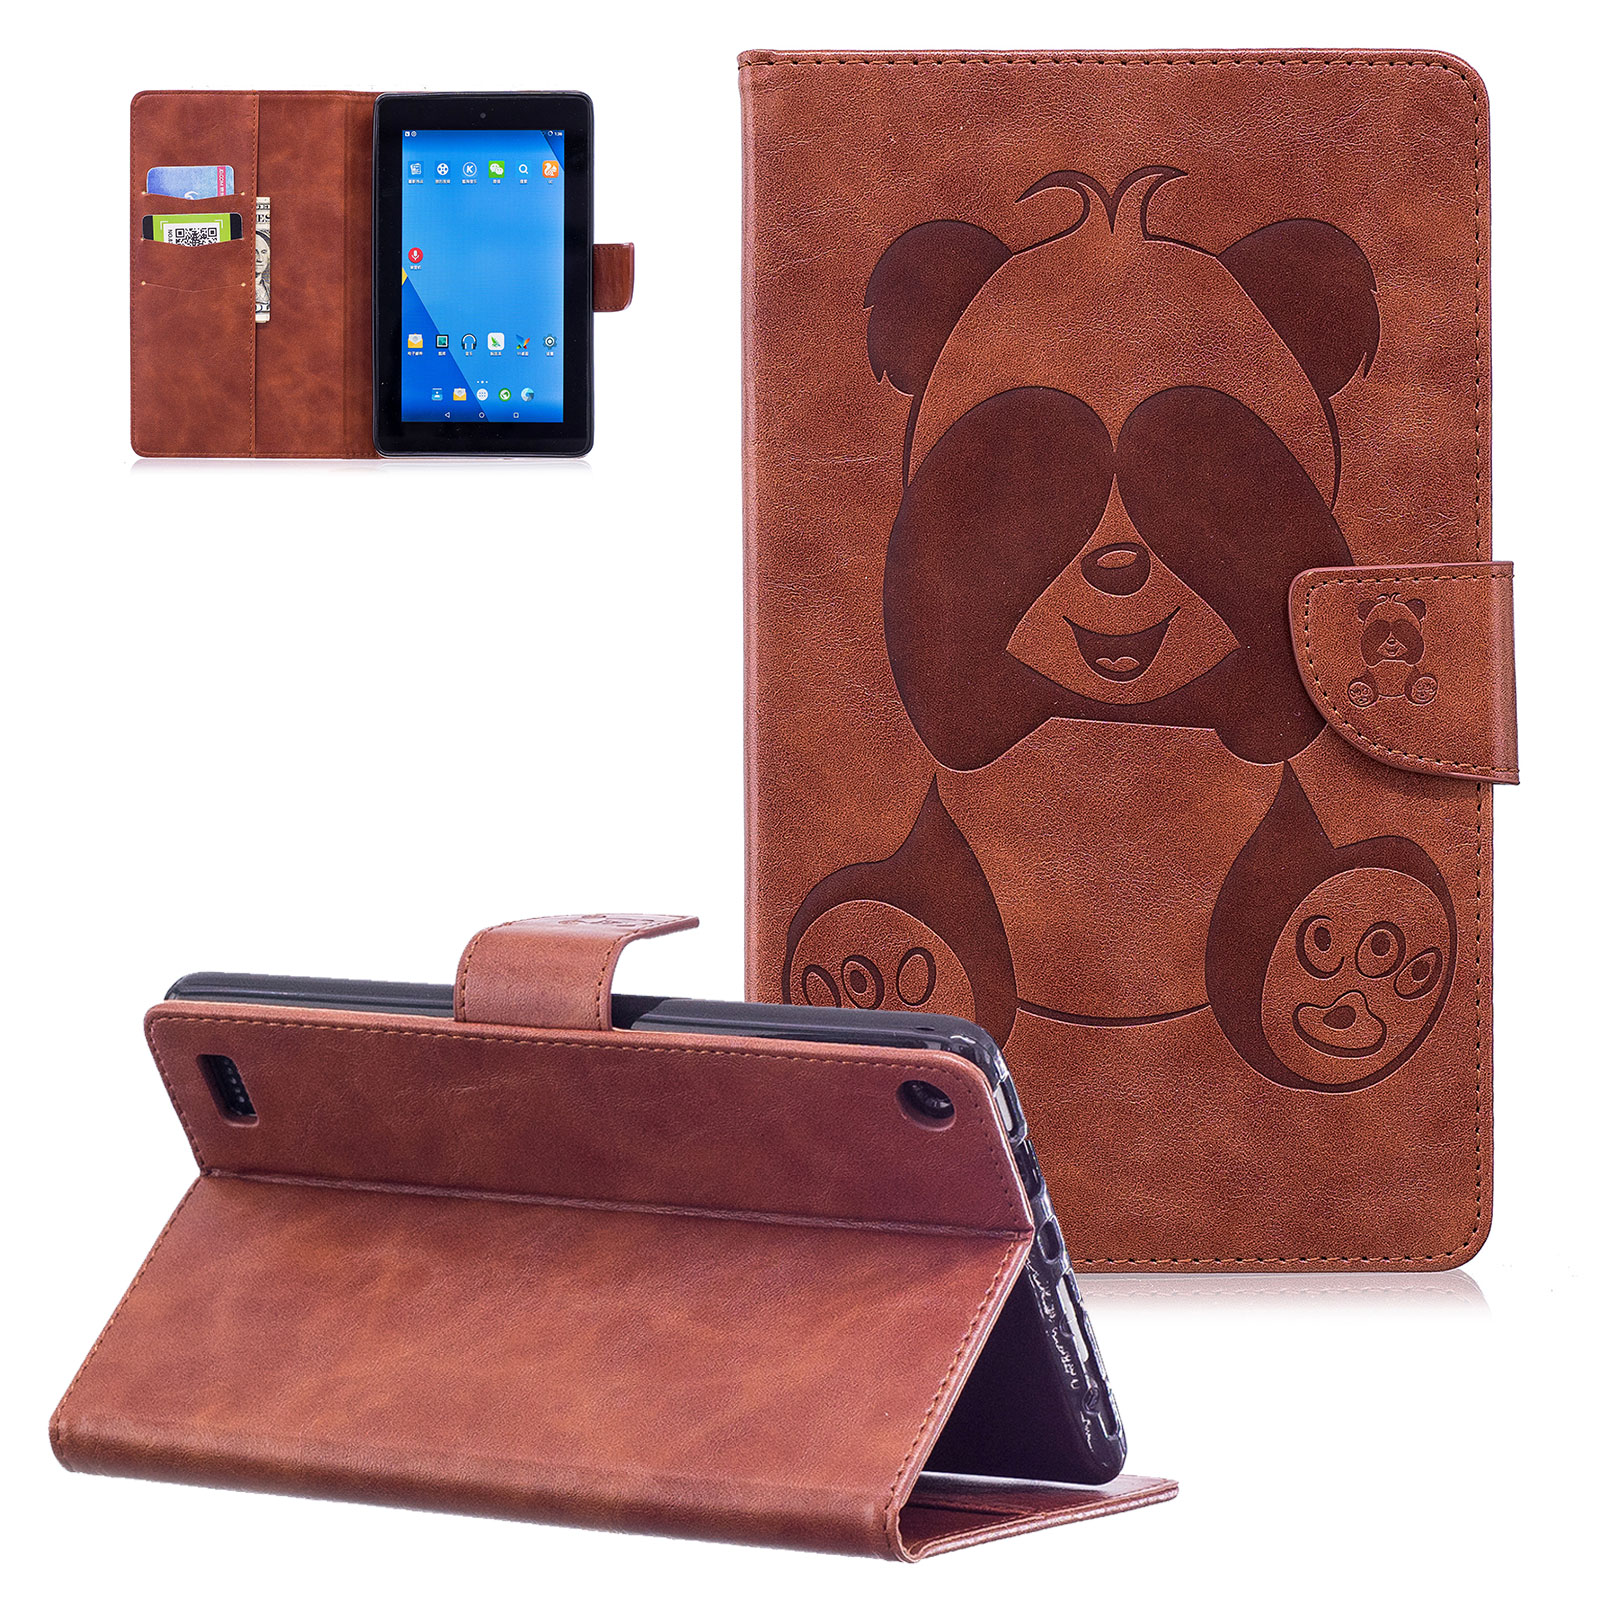 Fire 7 2017 Case, Fire 7 2015 Case,Goodest [Panda Series] Slim PU Leather Magnetic Flip Stand Case Cover for Amazon Fire 7 inch Tablet (7th generation,2017 Release/ 5th generation,2015 Release),Brown